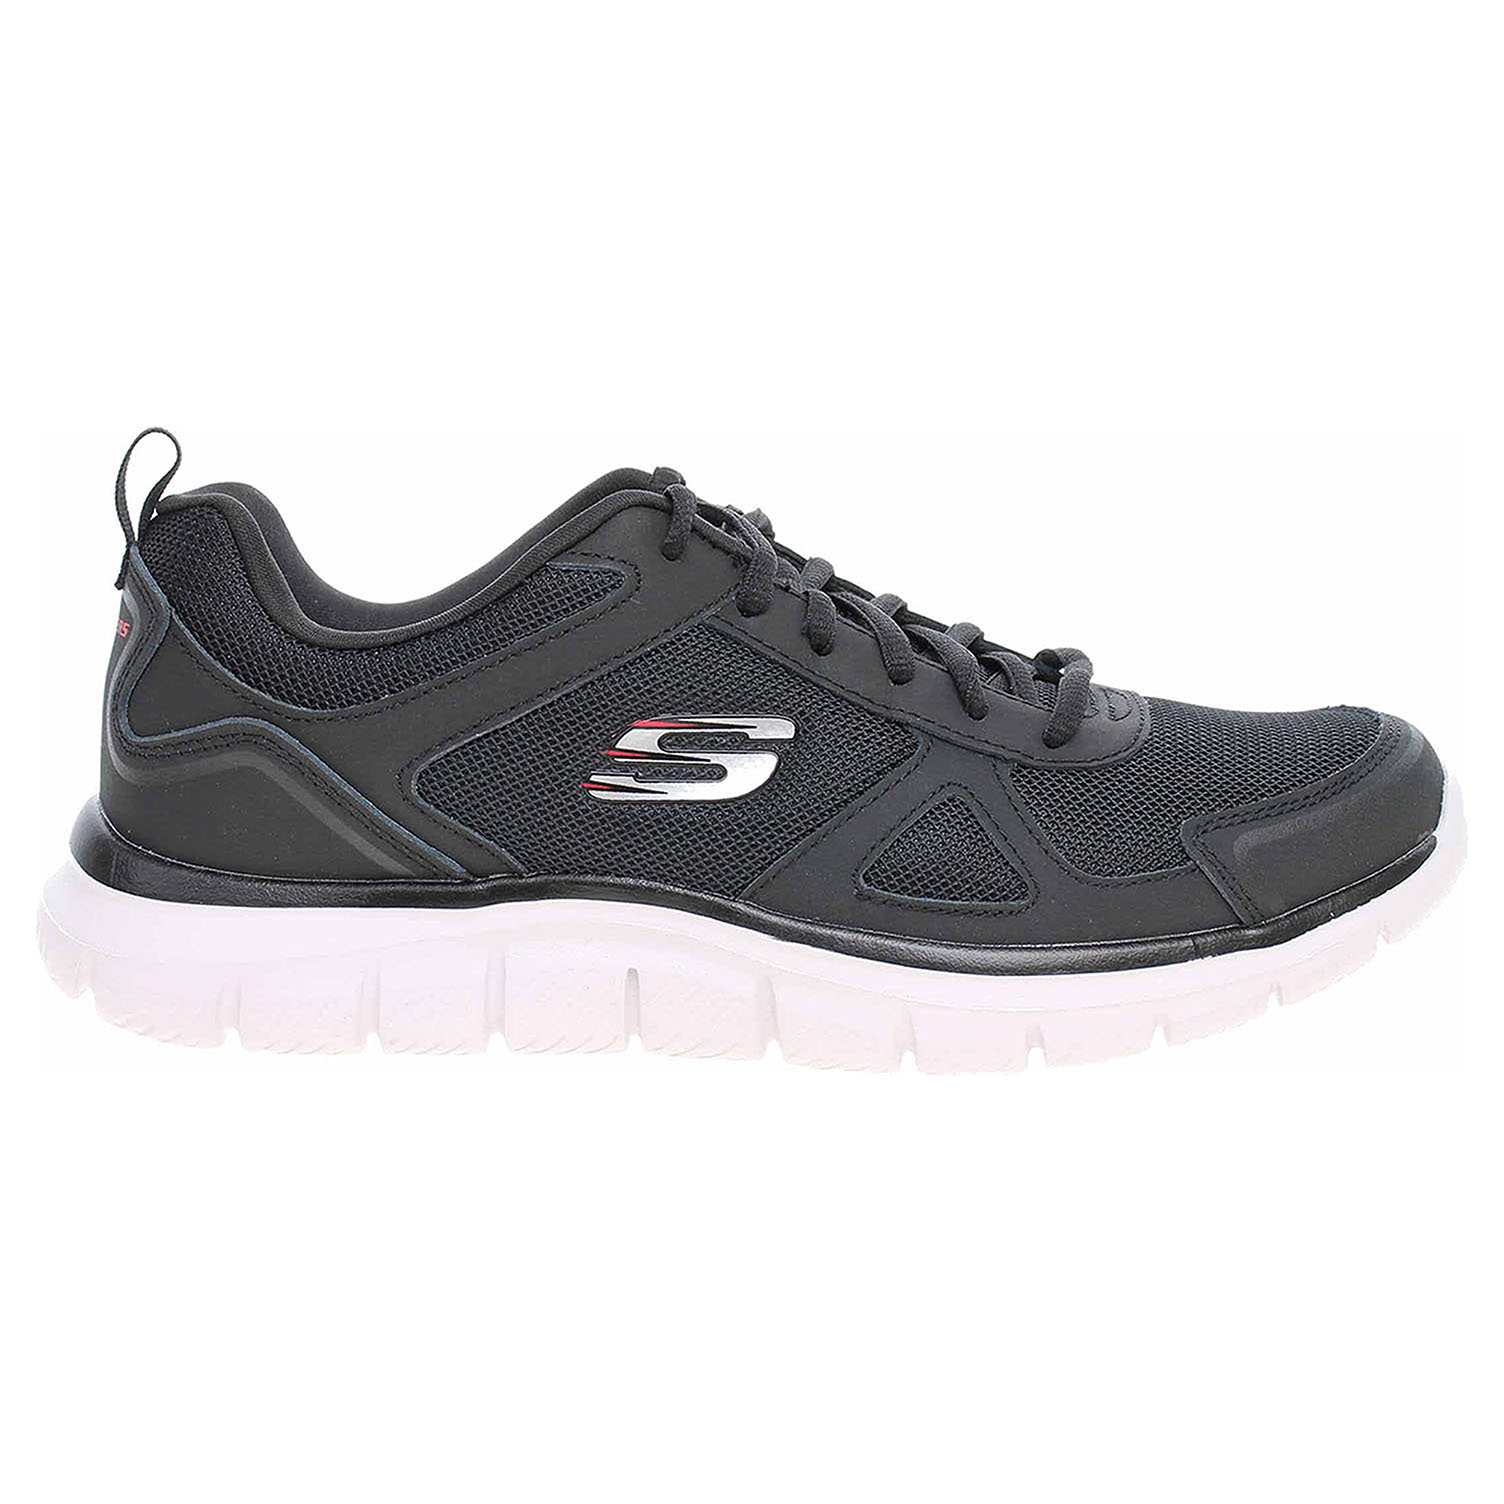 Skechers Track - Scloric black-red